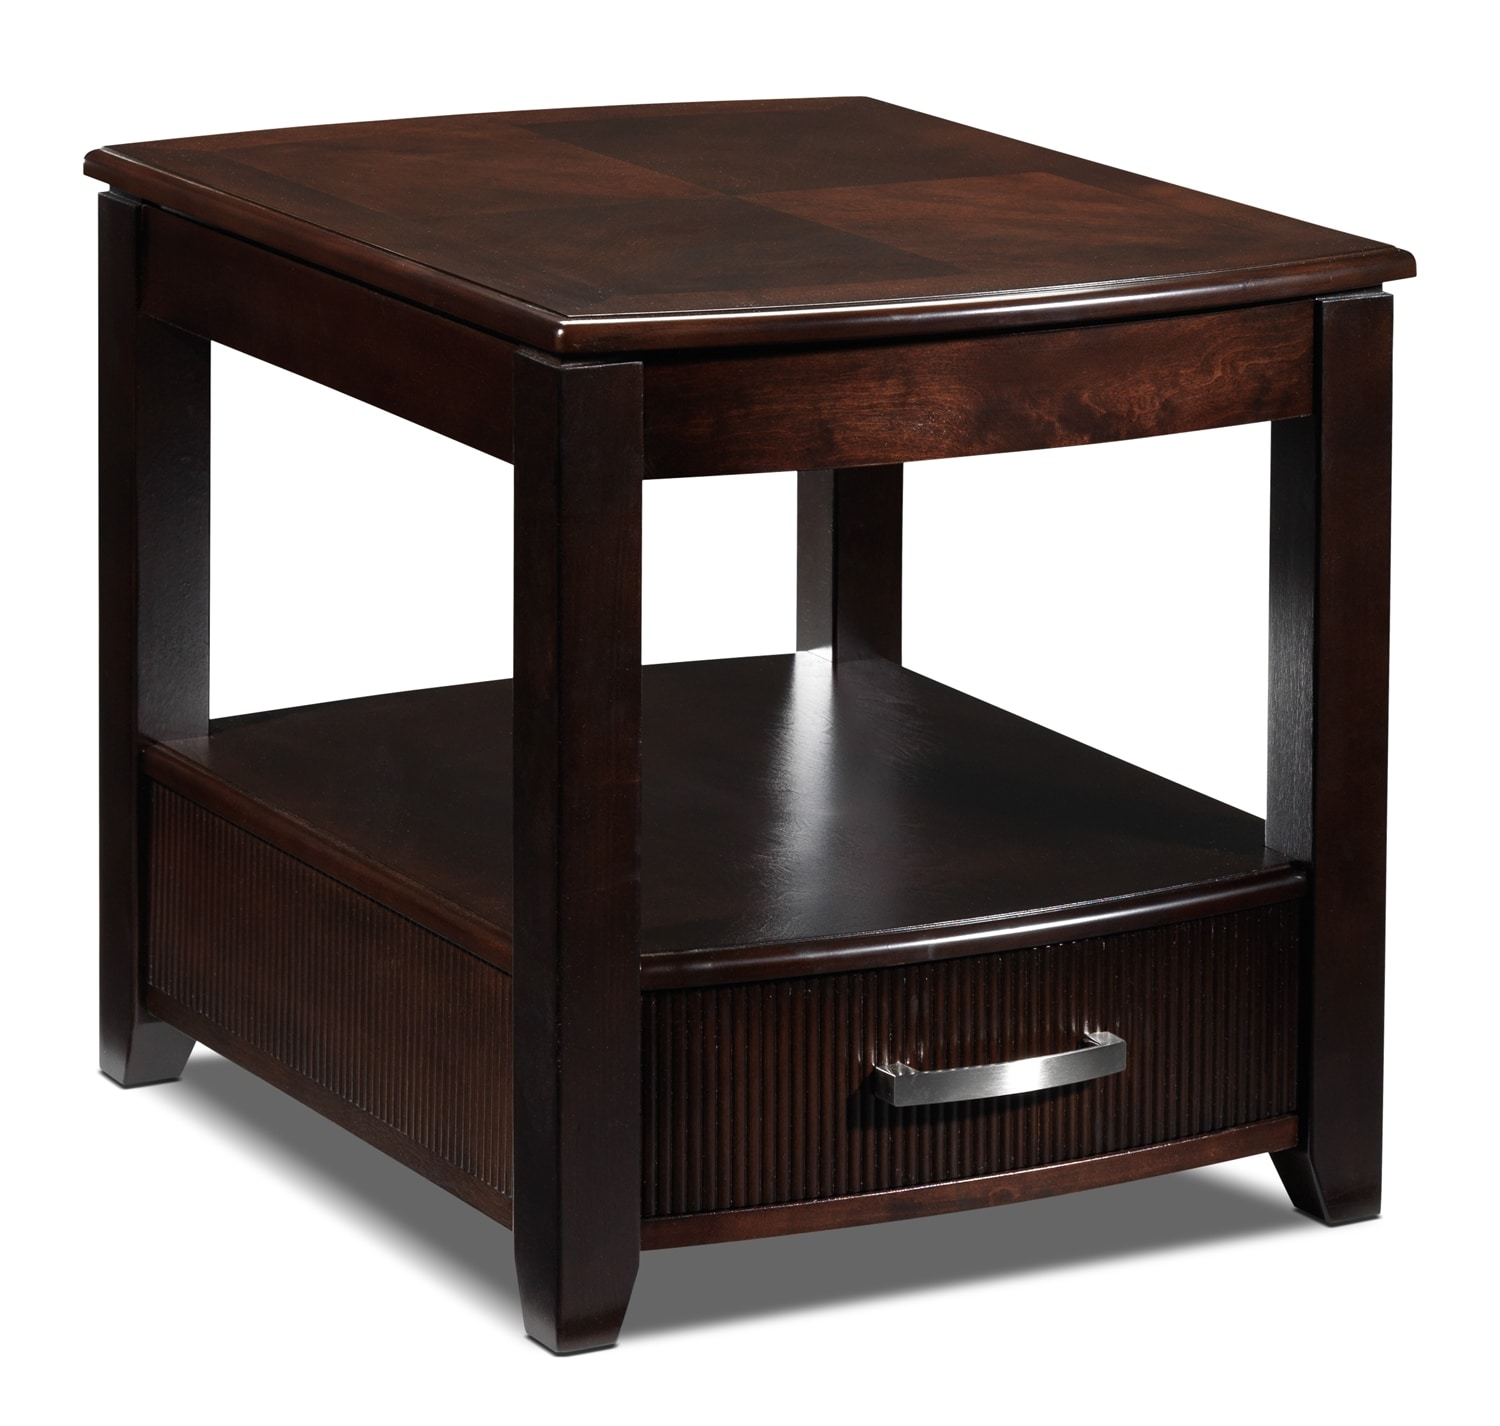 Joanna End Table - Espresso